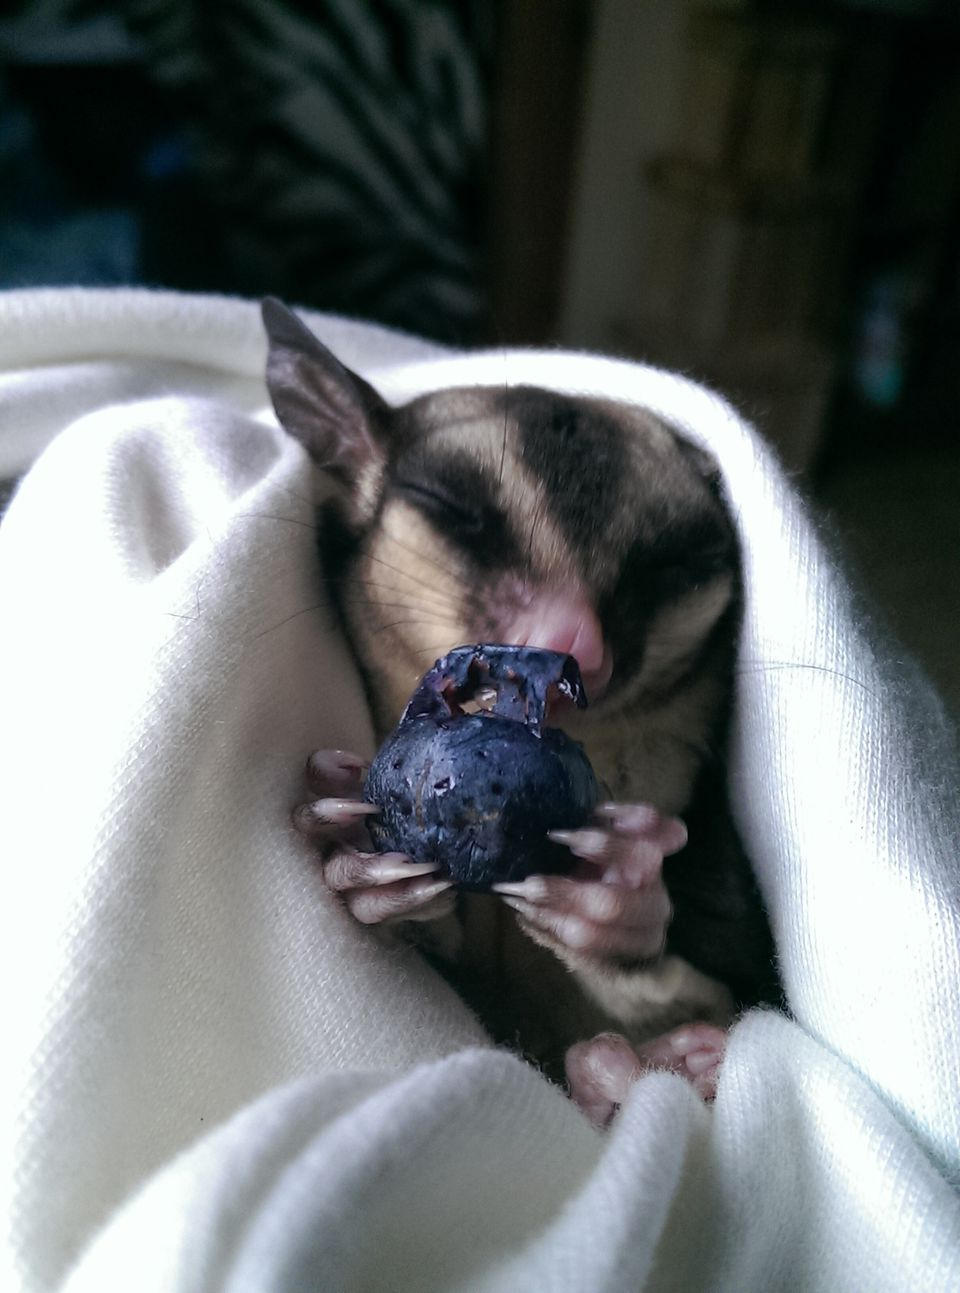 Sugar Glider eating a blueberry